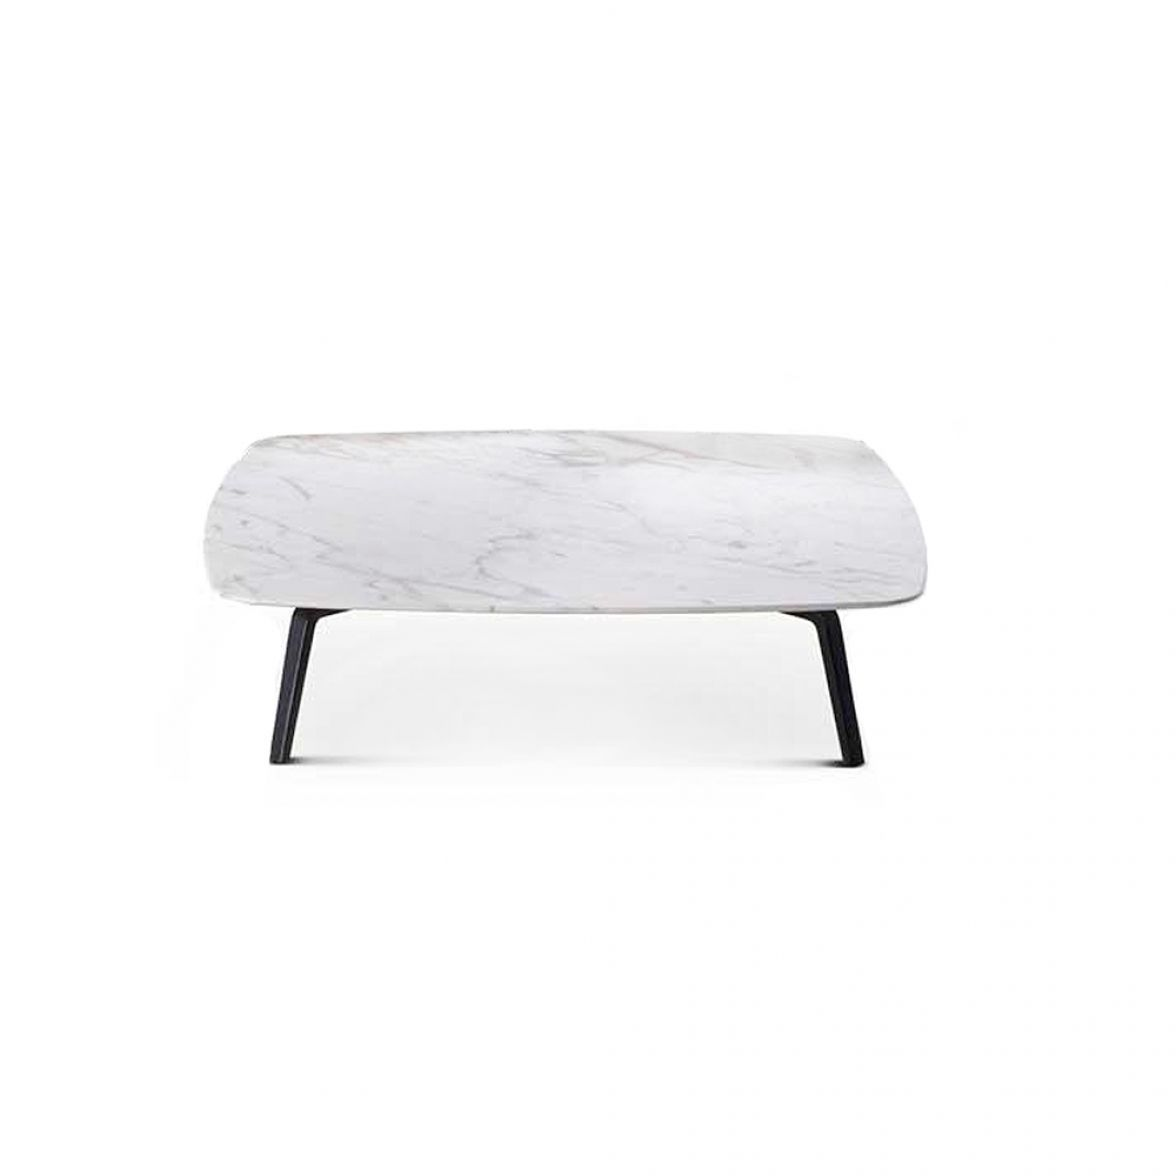 Fiorile coffee table